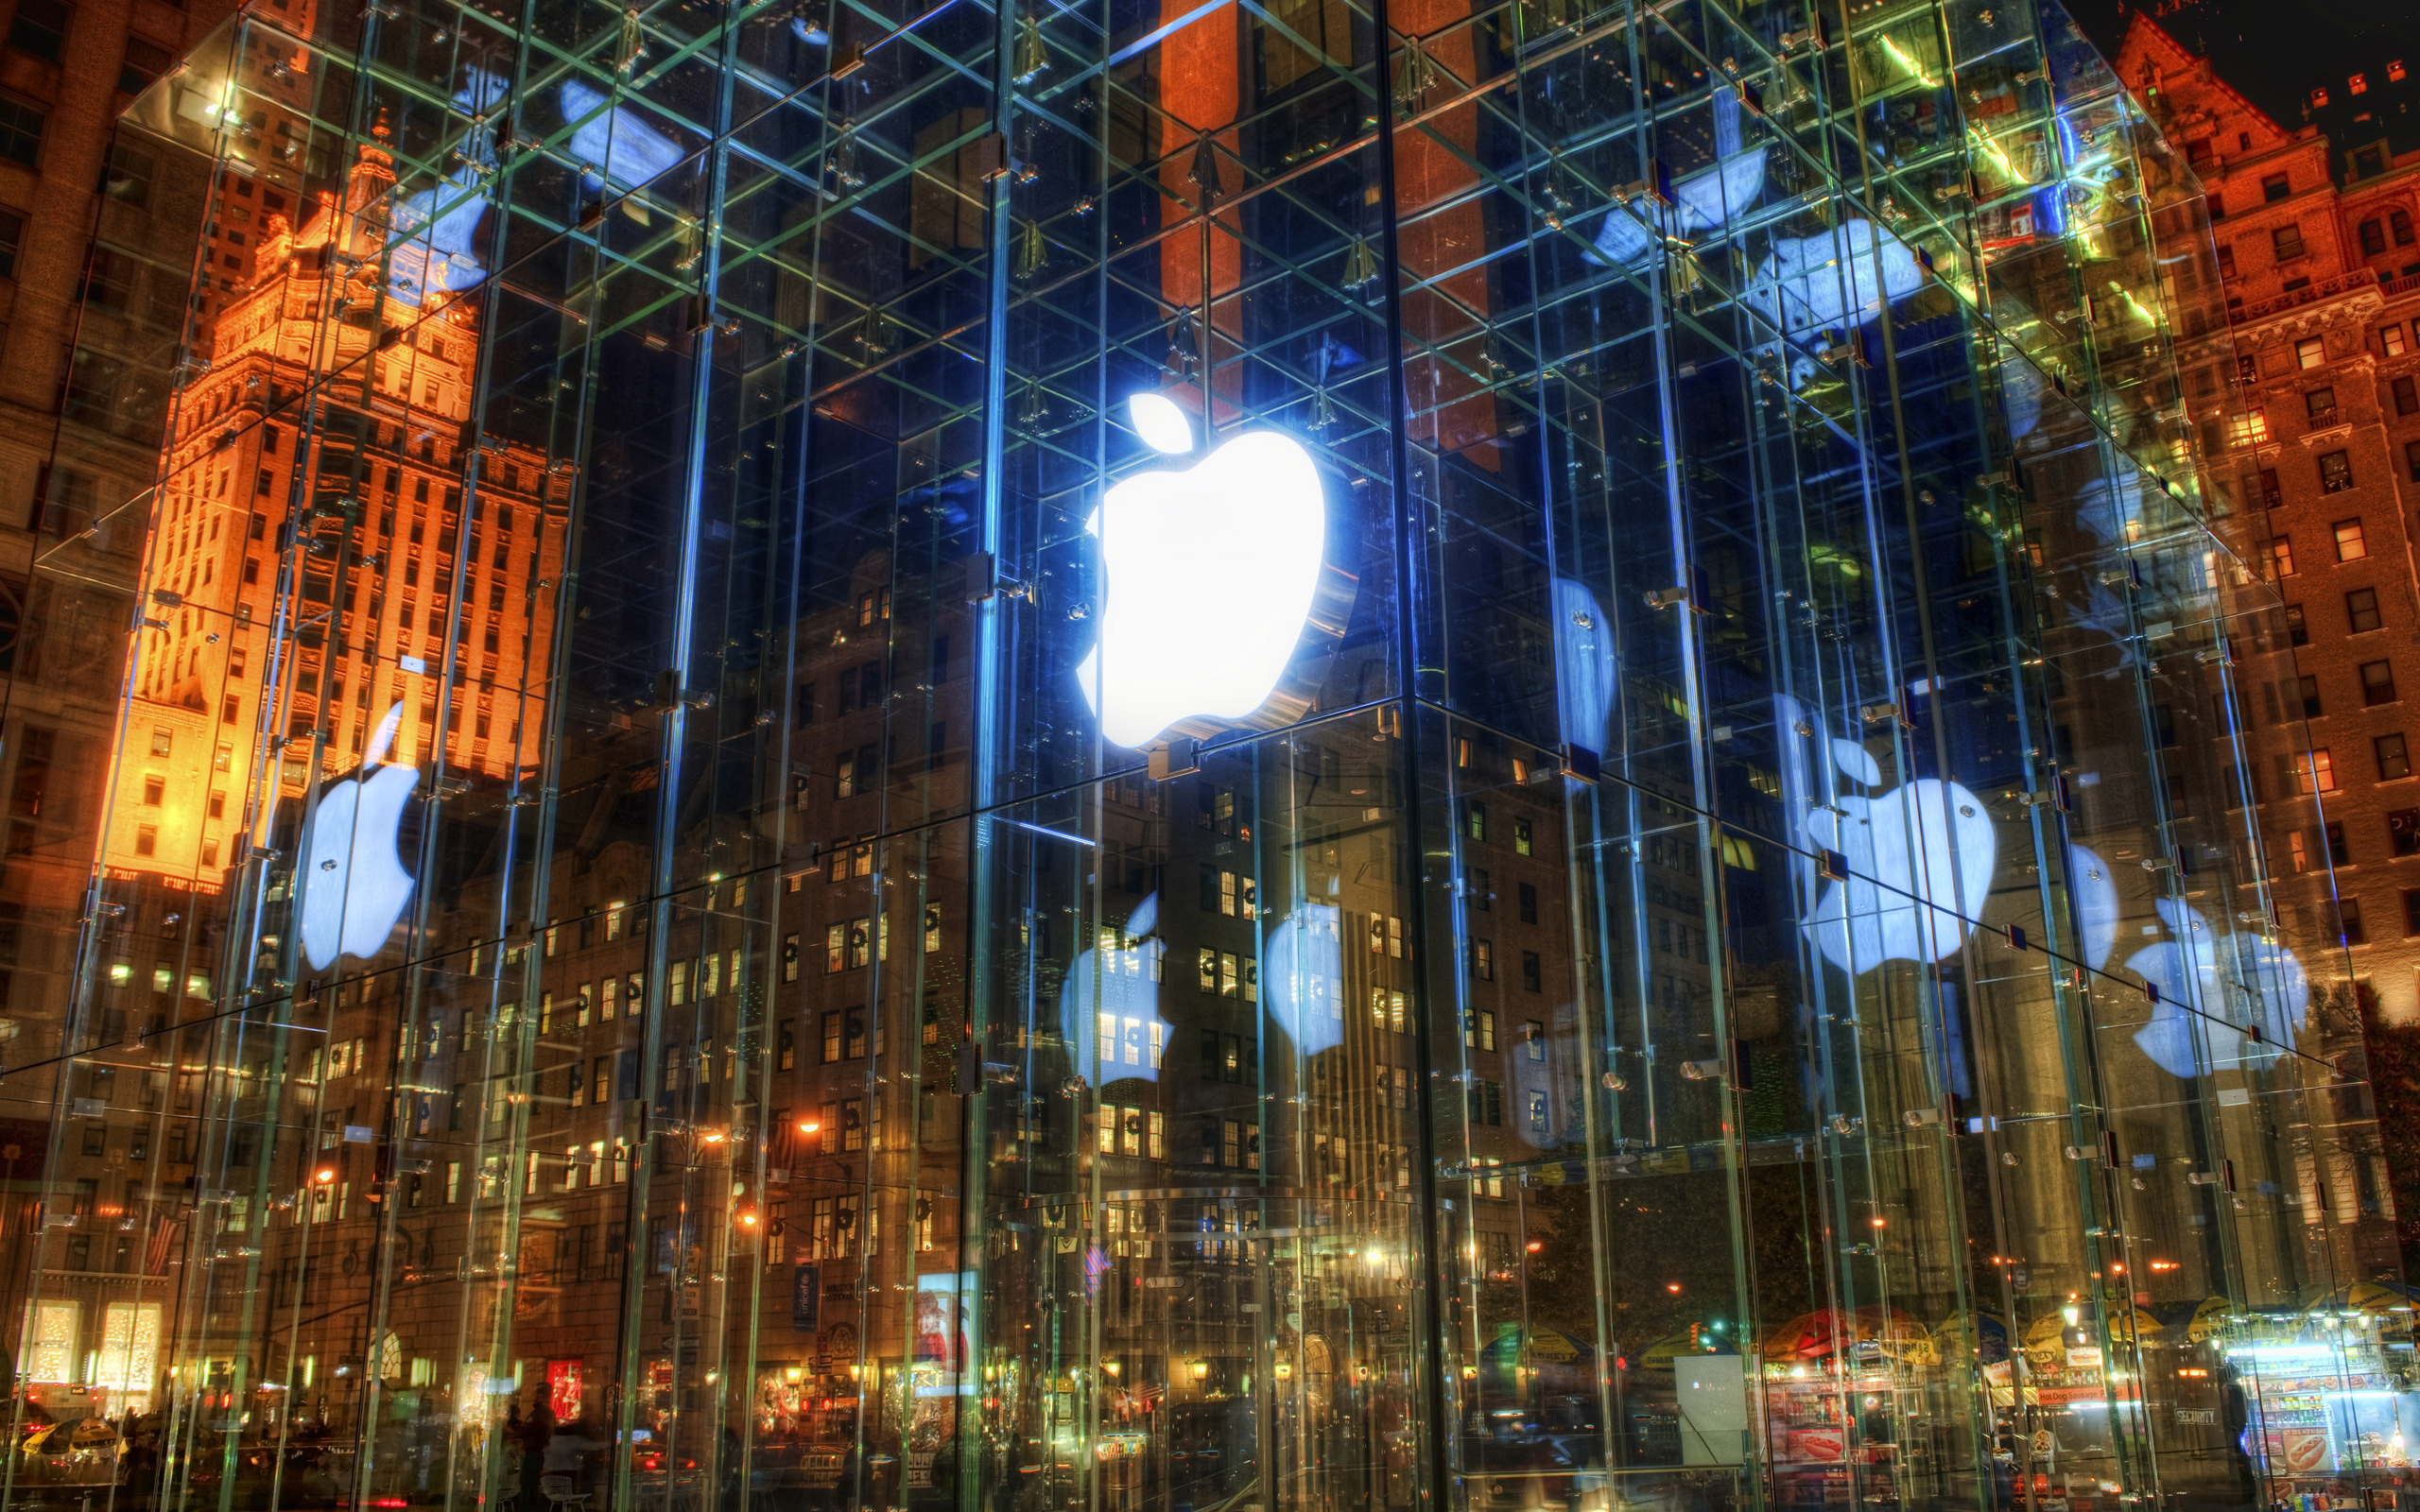 The incredible apple retail store wallpaper 2560x1600 for Wallpaper retailers